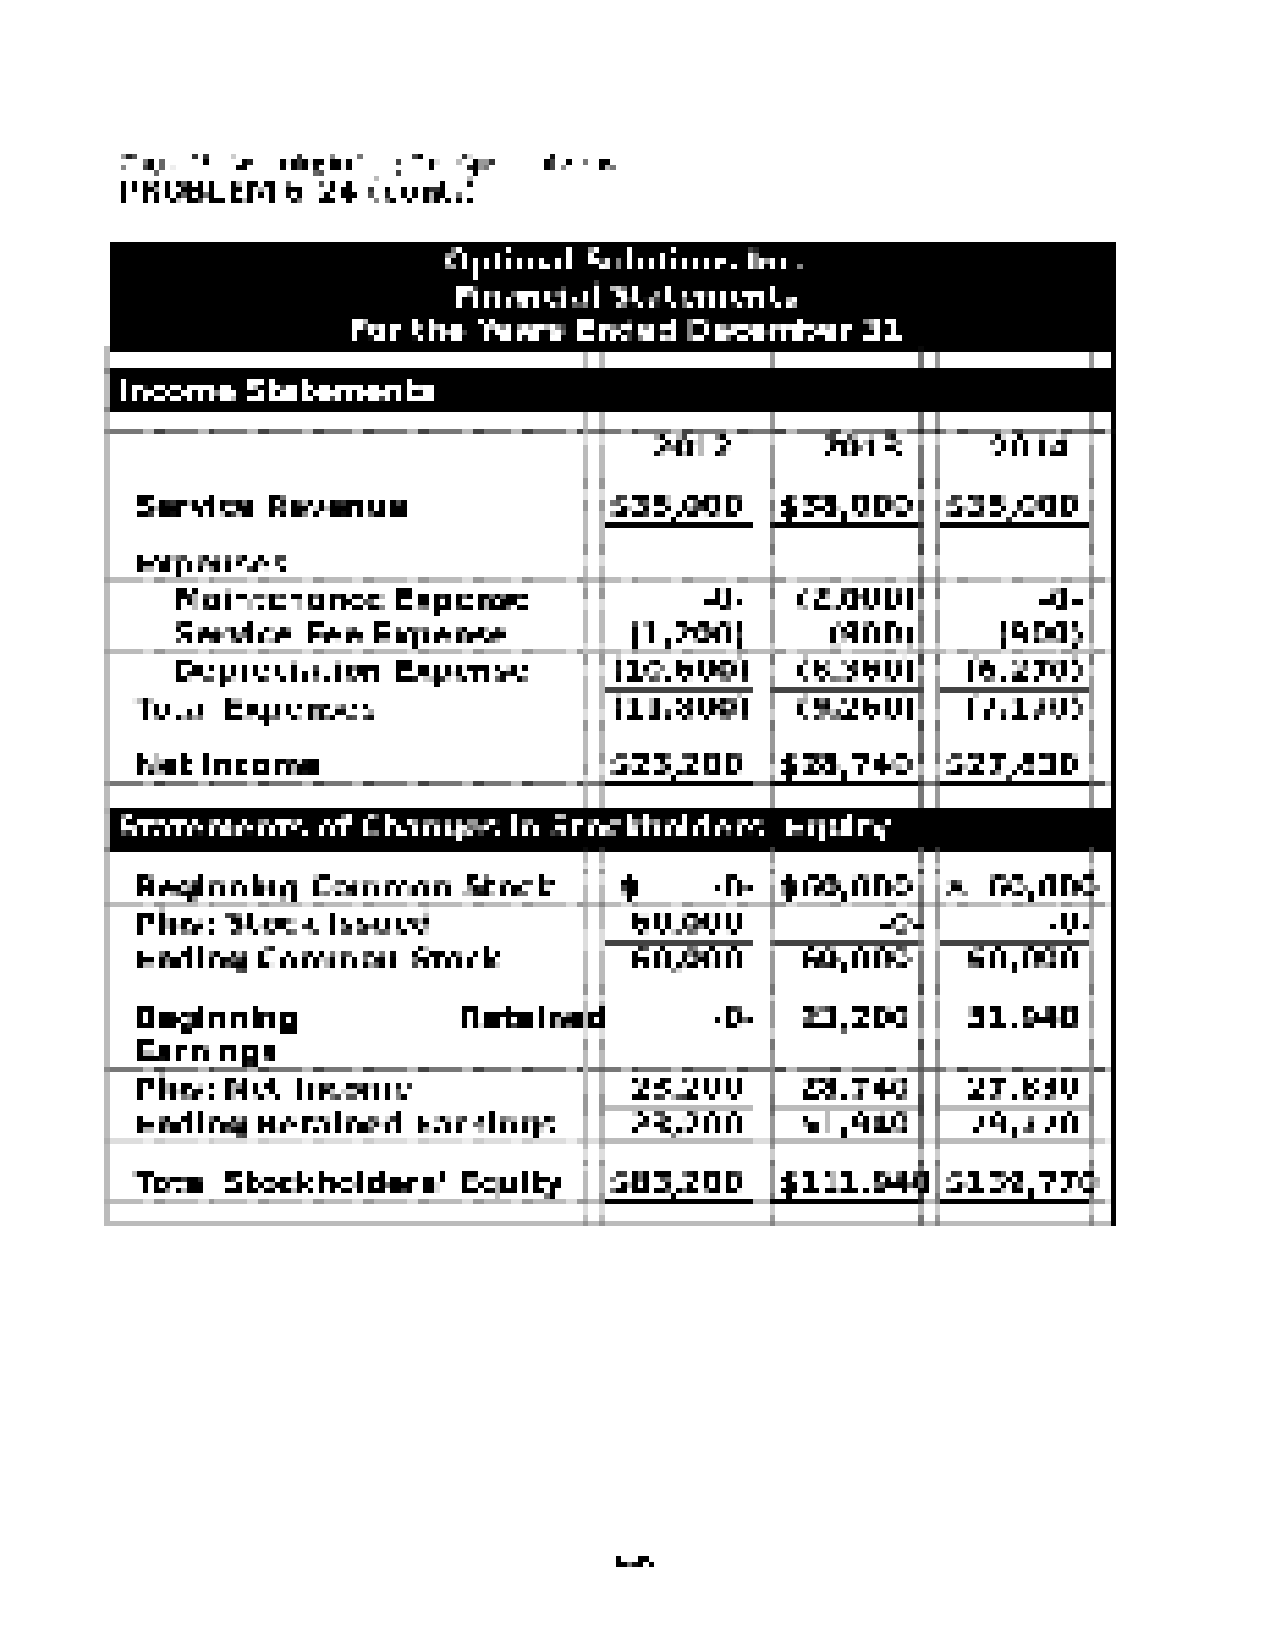 problems chapter 6 acct 460 Intermediate accounting 7e, chapter 4 solutions - download as pdf file (pdf), text file (txt) or read online.